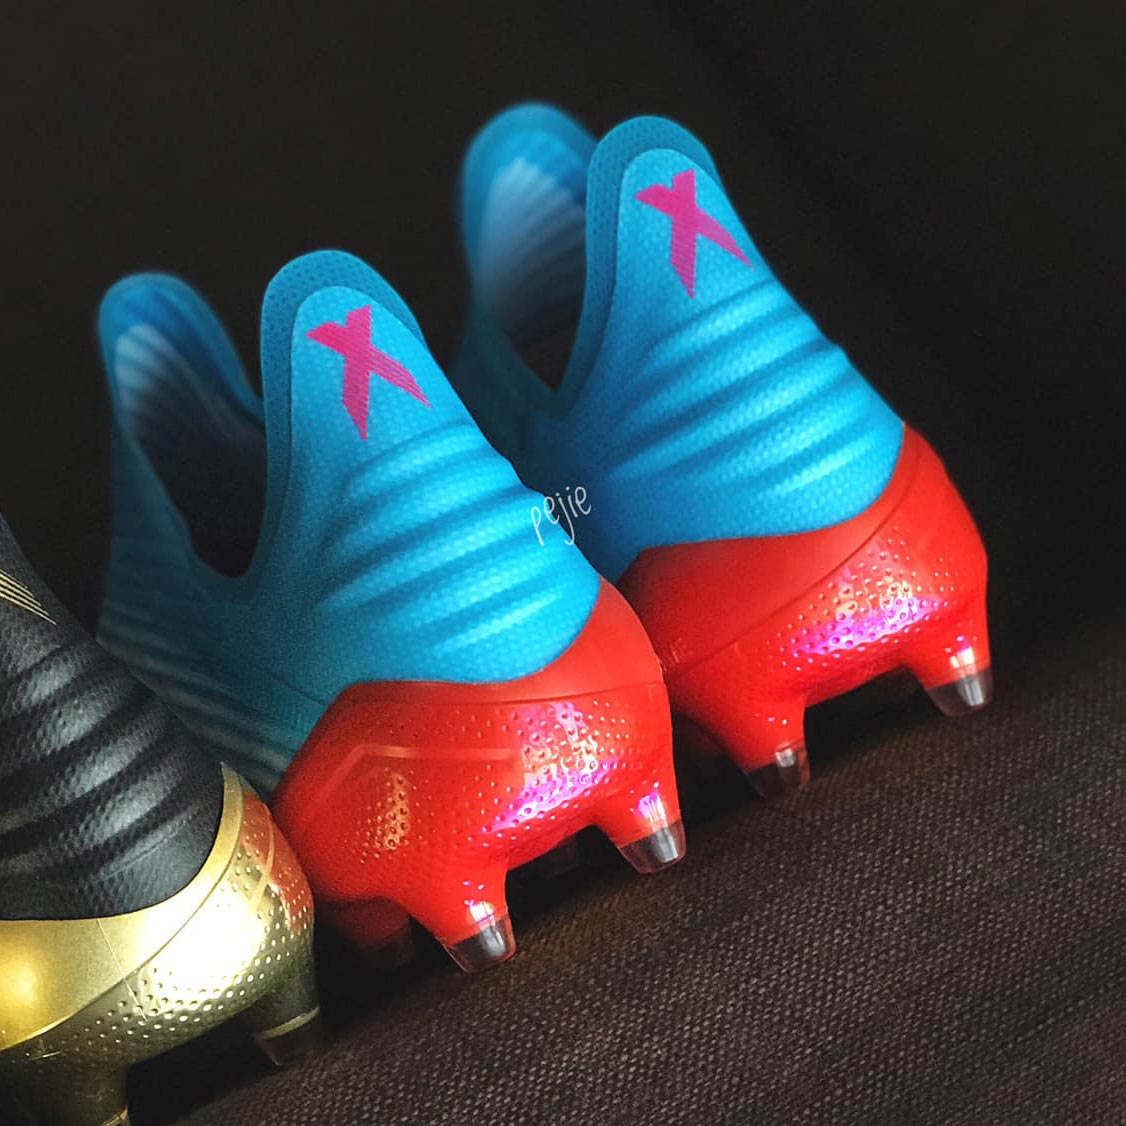 da0101d63df1 The Adidas X 19+ Hard Wired cleats have an interesting look that sees the  upper fade from light blue in the back towards more white parts in the  front.